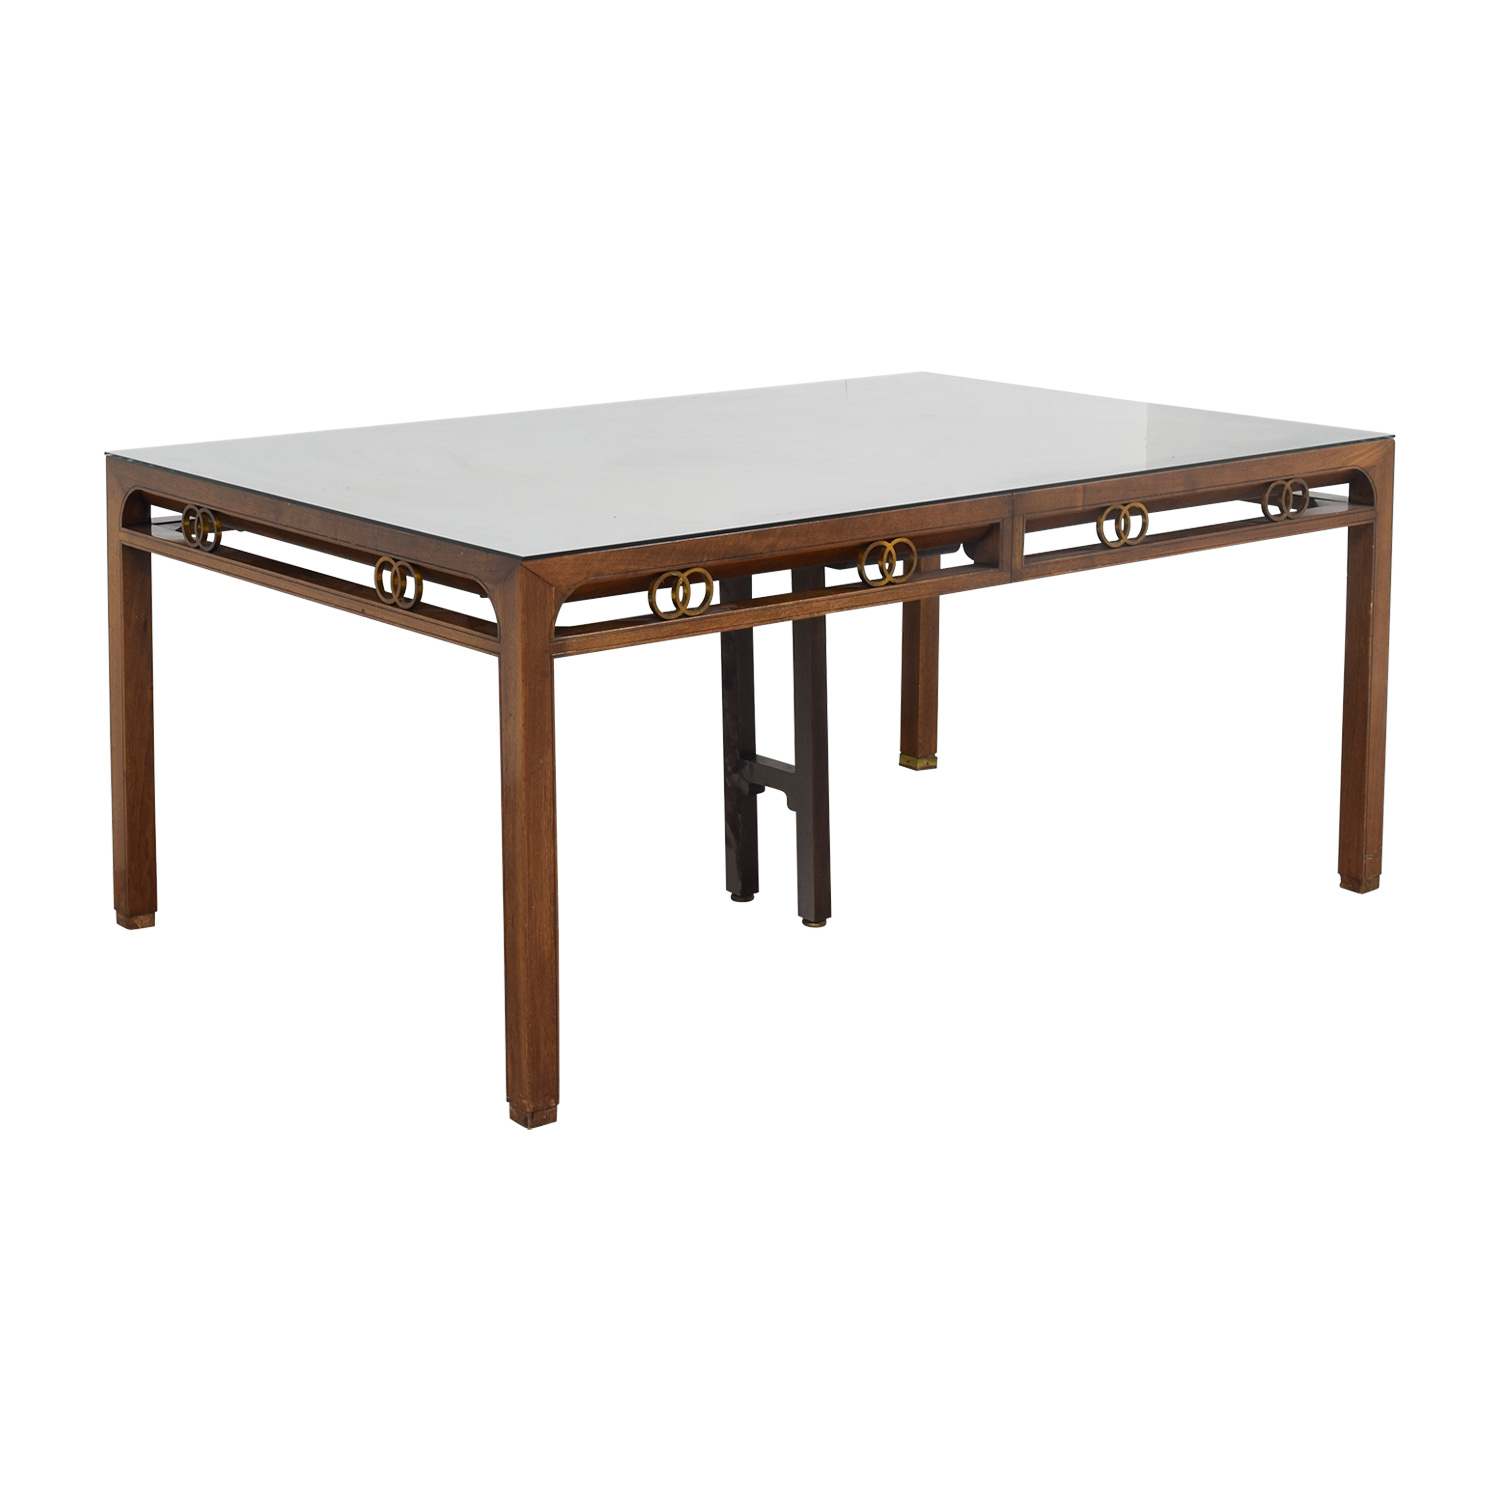 ... Baker Baker Mid Century Modern Dining Room Table For Sale ...